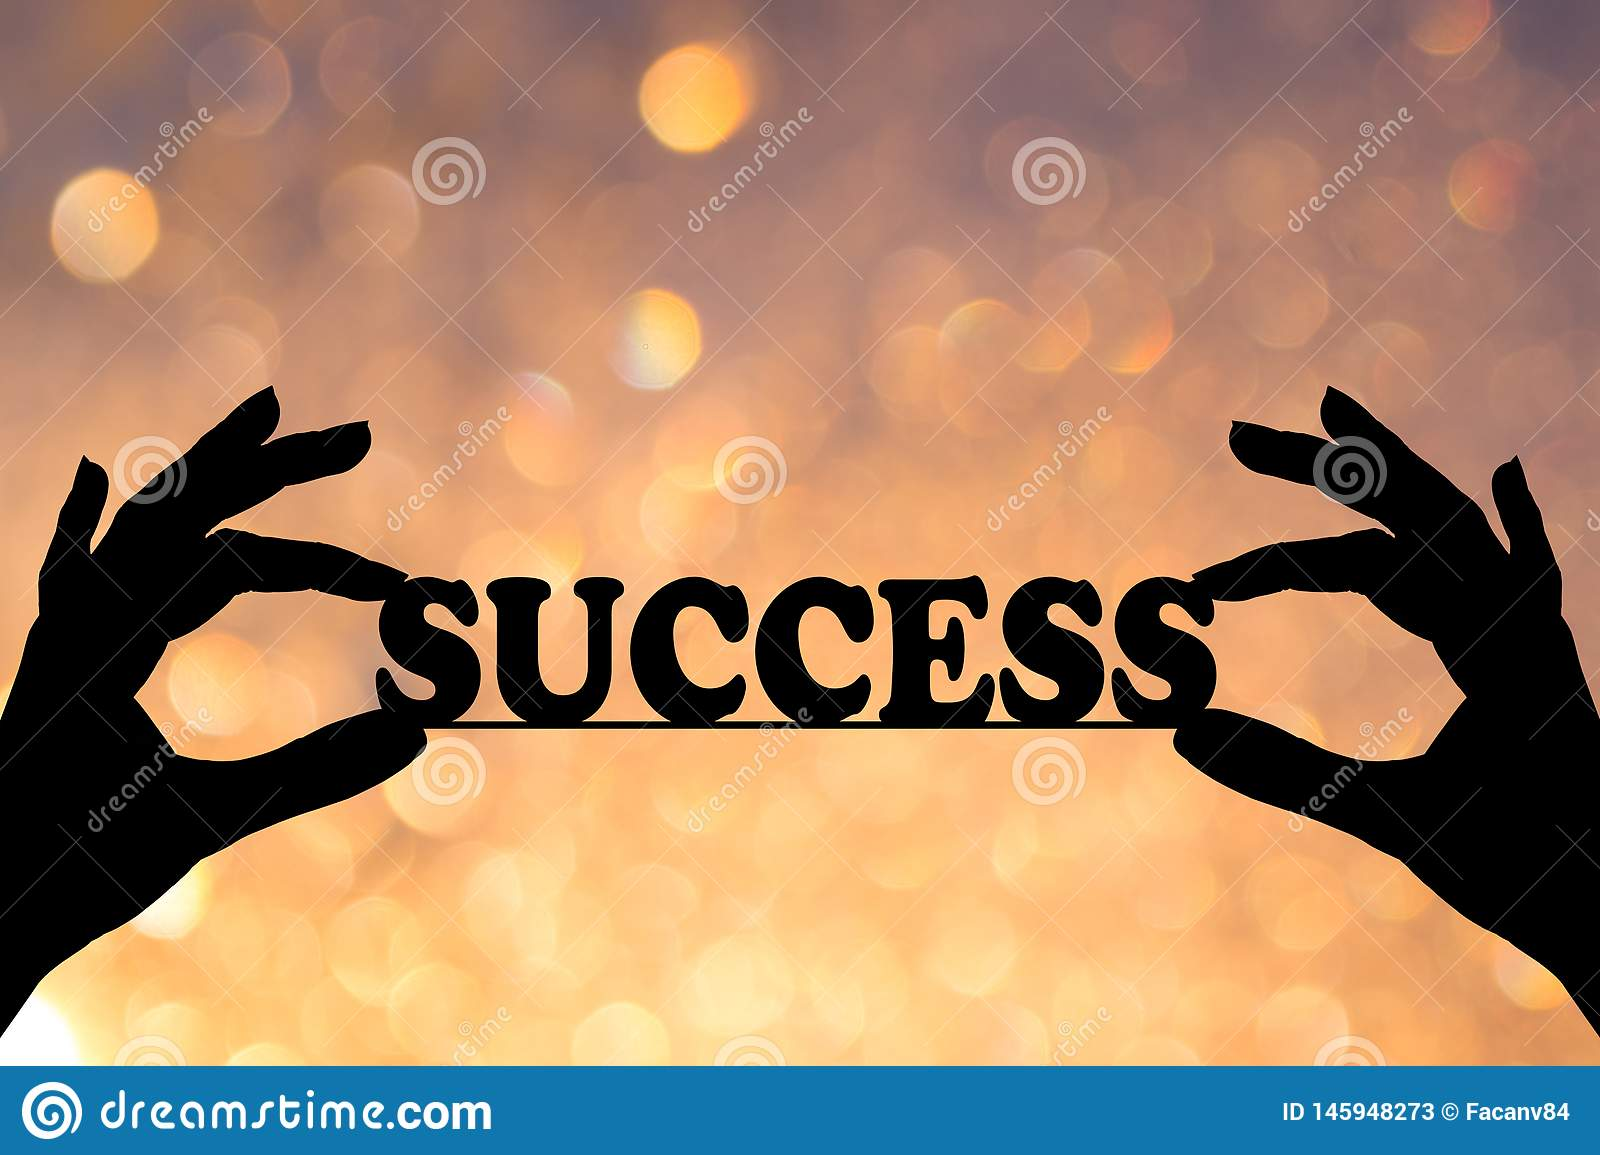 Silhouette, the conceptual text of the message `SUCCESS` in safe hands. Yellow and orange bokeh in the background.